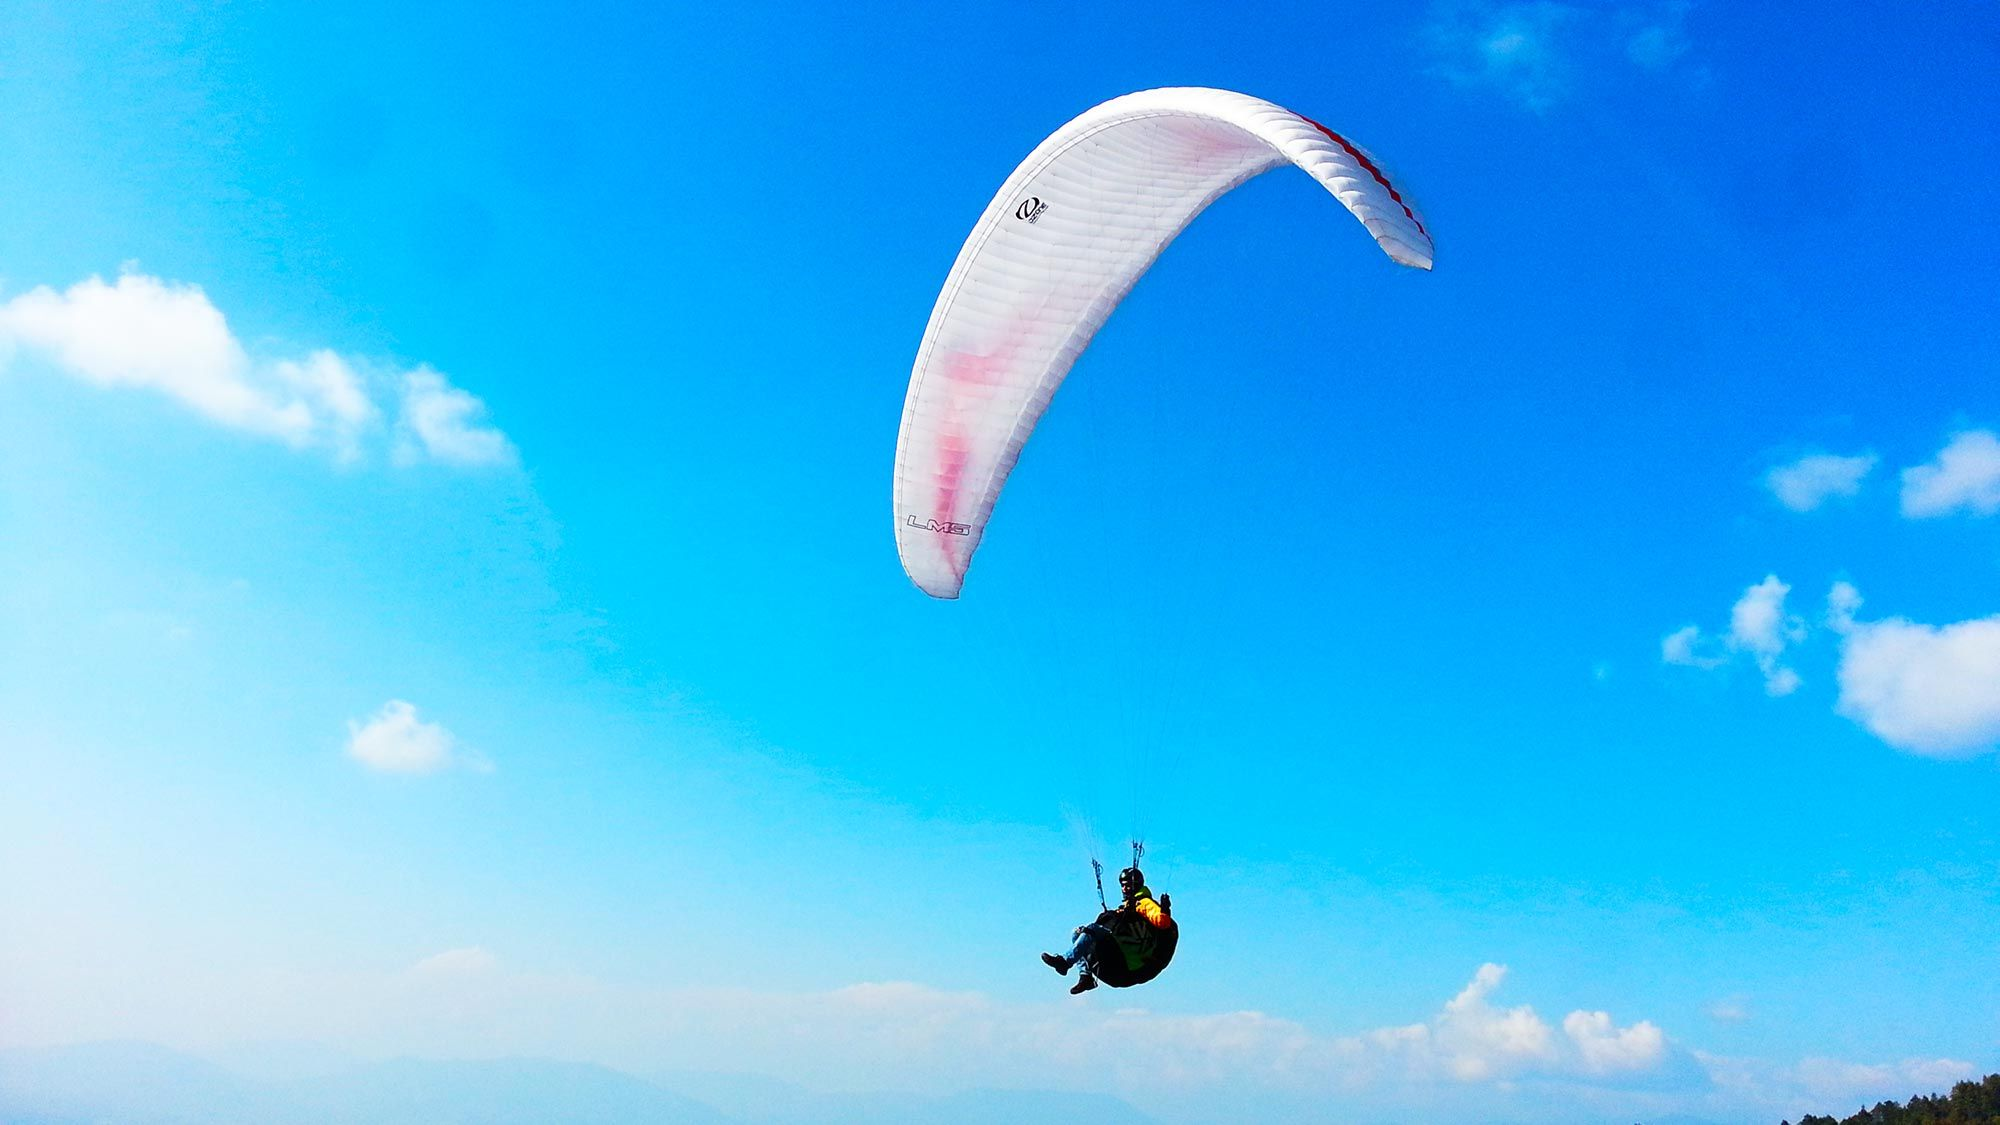 Paragliding adventure sports.